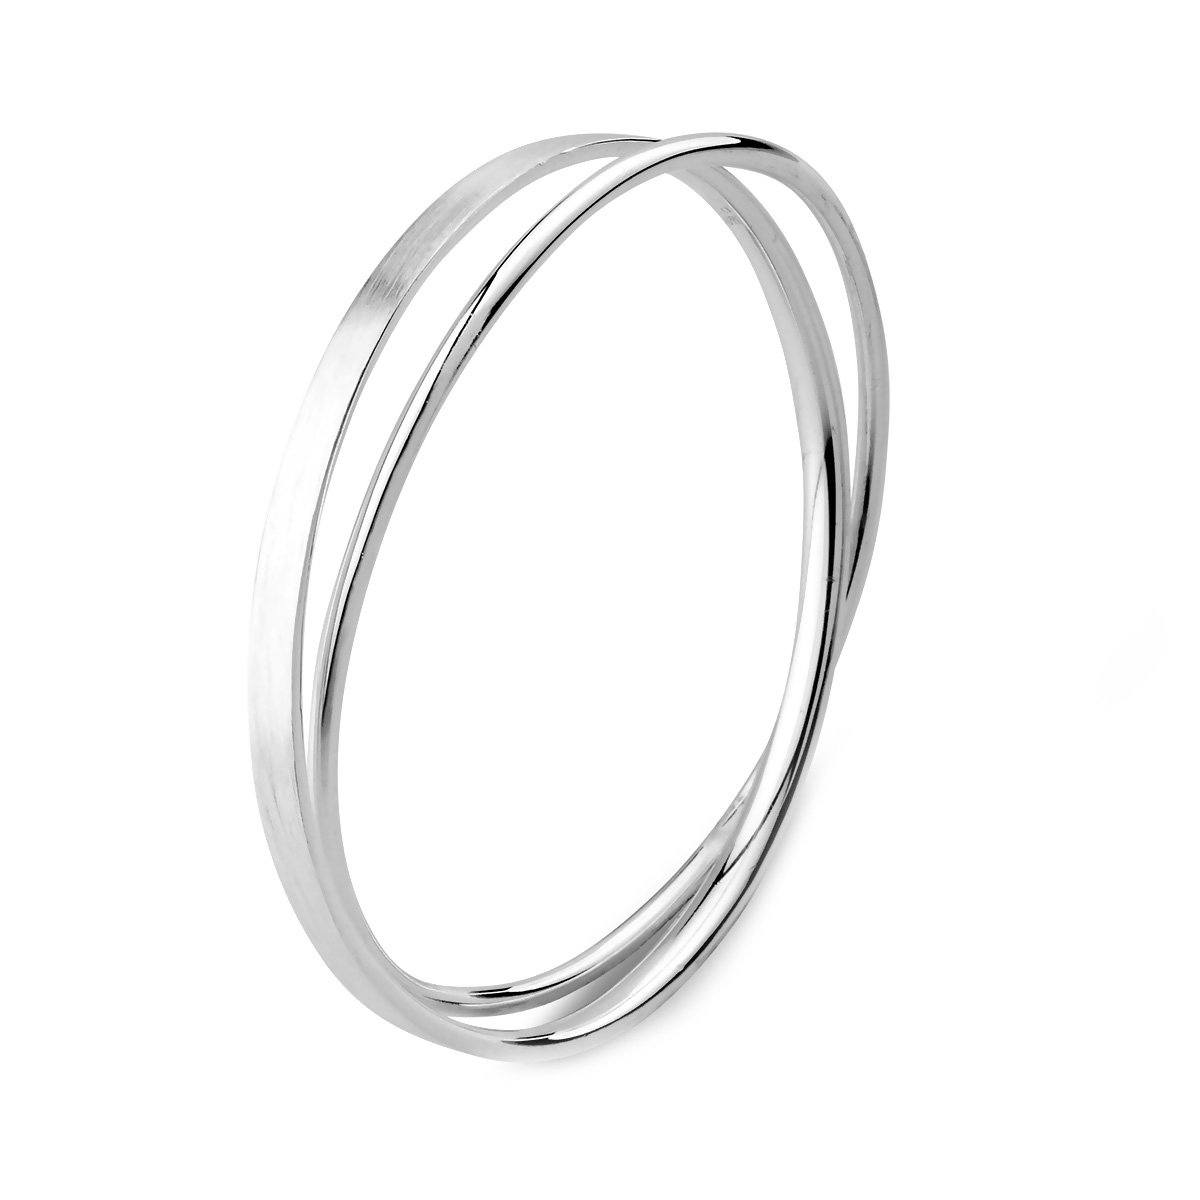 Merdia 990 Solid Sterling Silver Polished and Rough Twisted Bangle Bracelet for Women 7CM